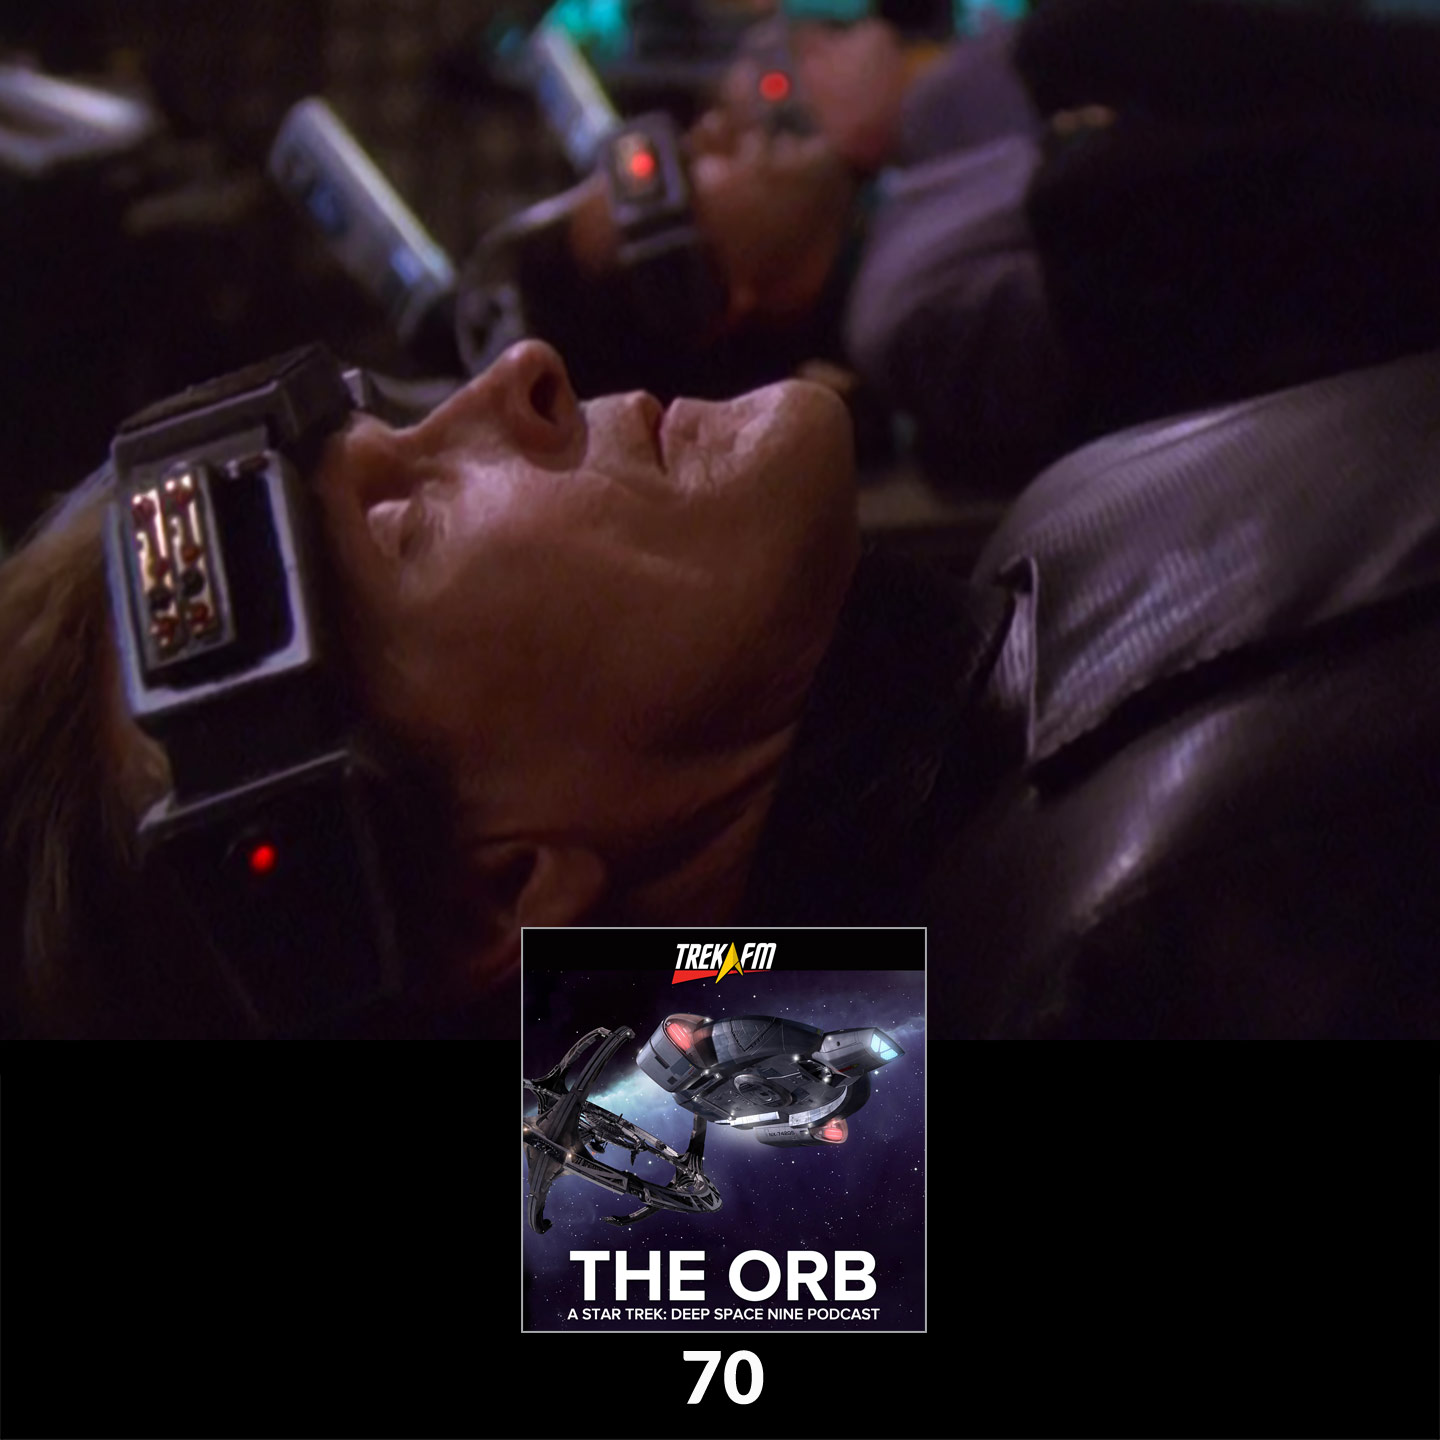 The Orb 70: The Reality of the Mind